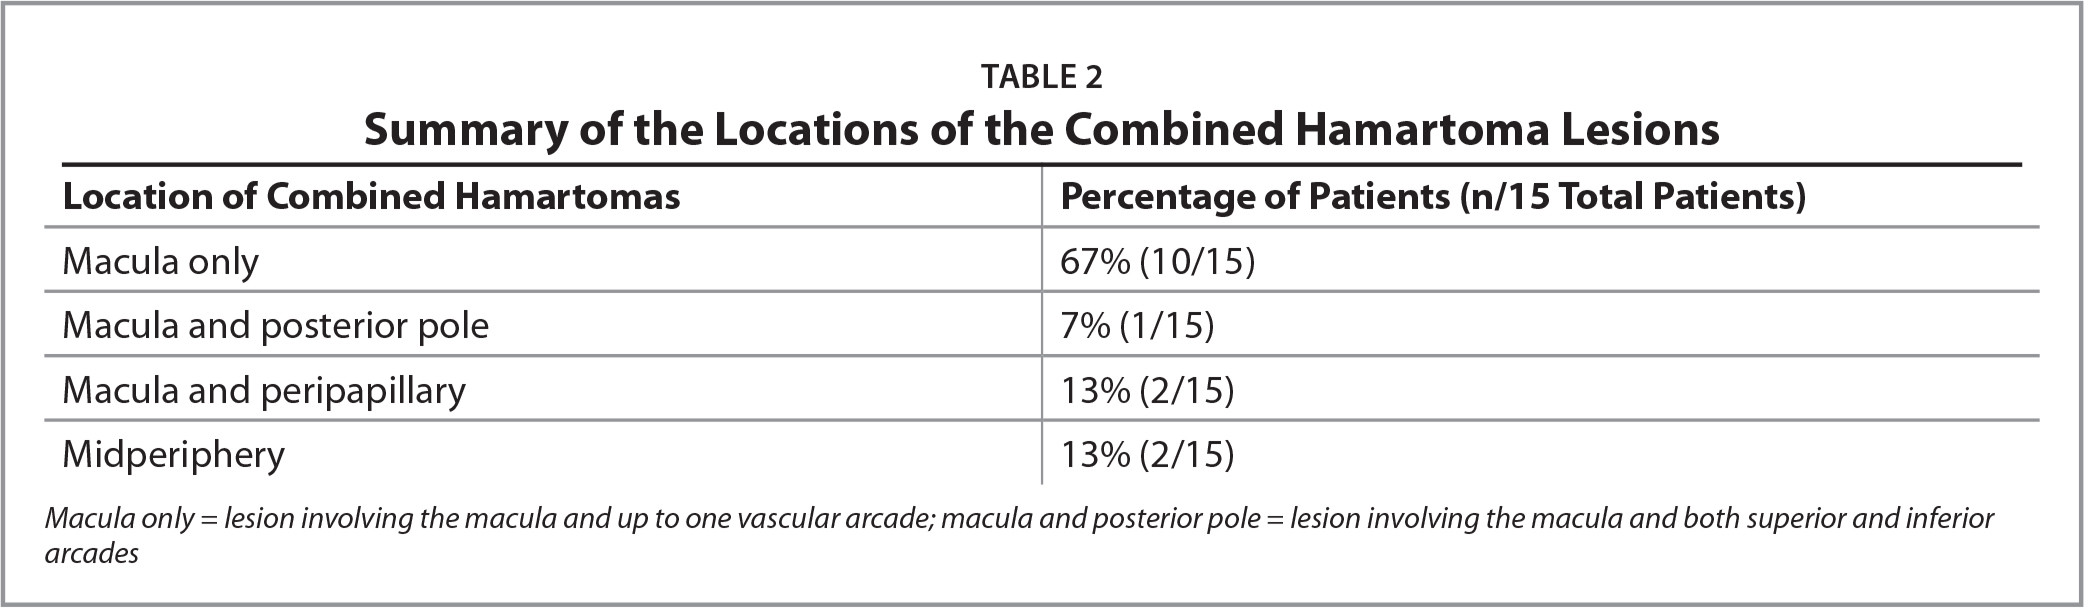 Summary of the Locations of the Combined Hamartoma Lesions